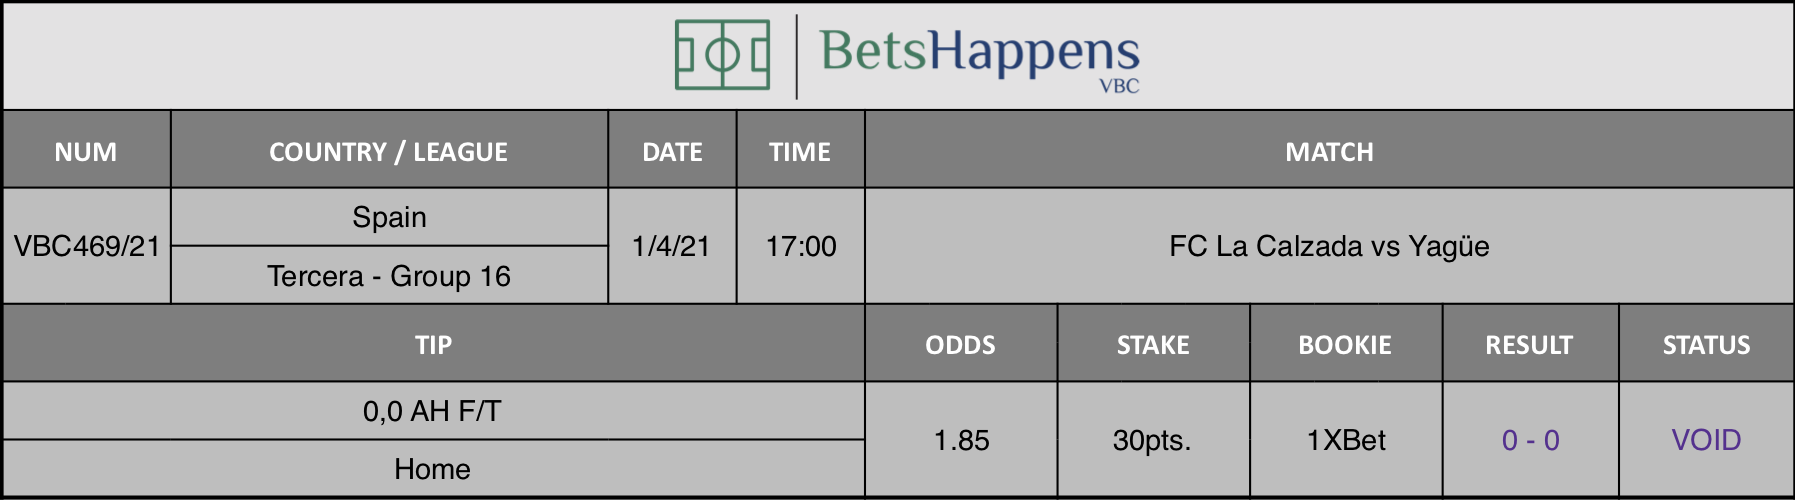 Results of our tip for the FC La Calzada vs Yagüe match where 0,0 AH F/T  Home is recommended.